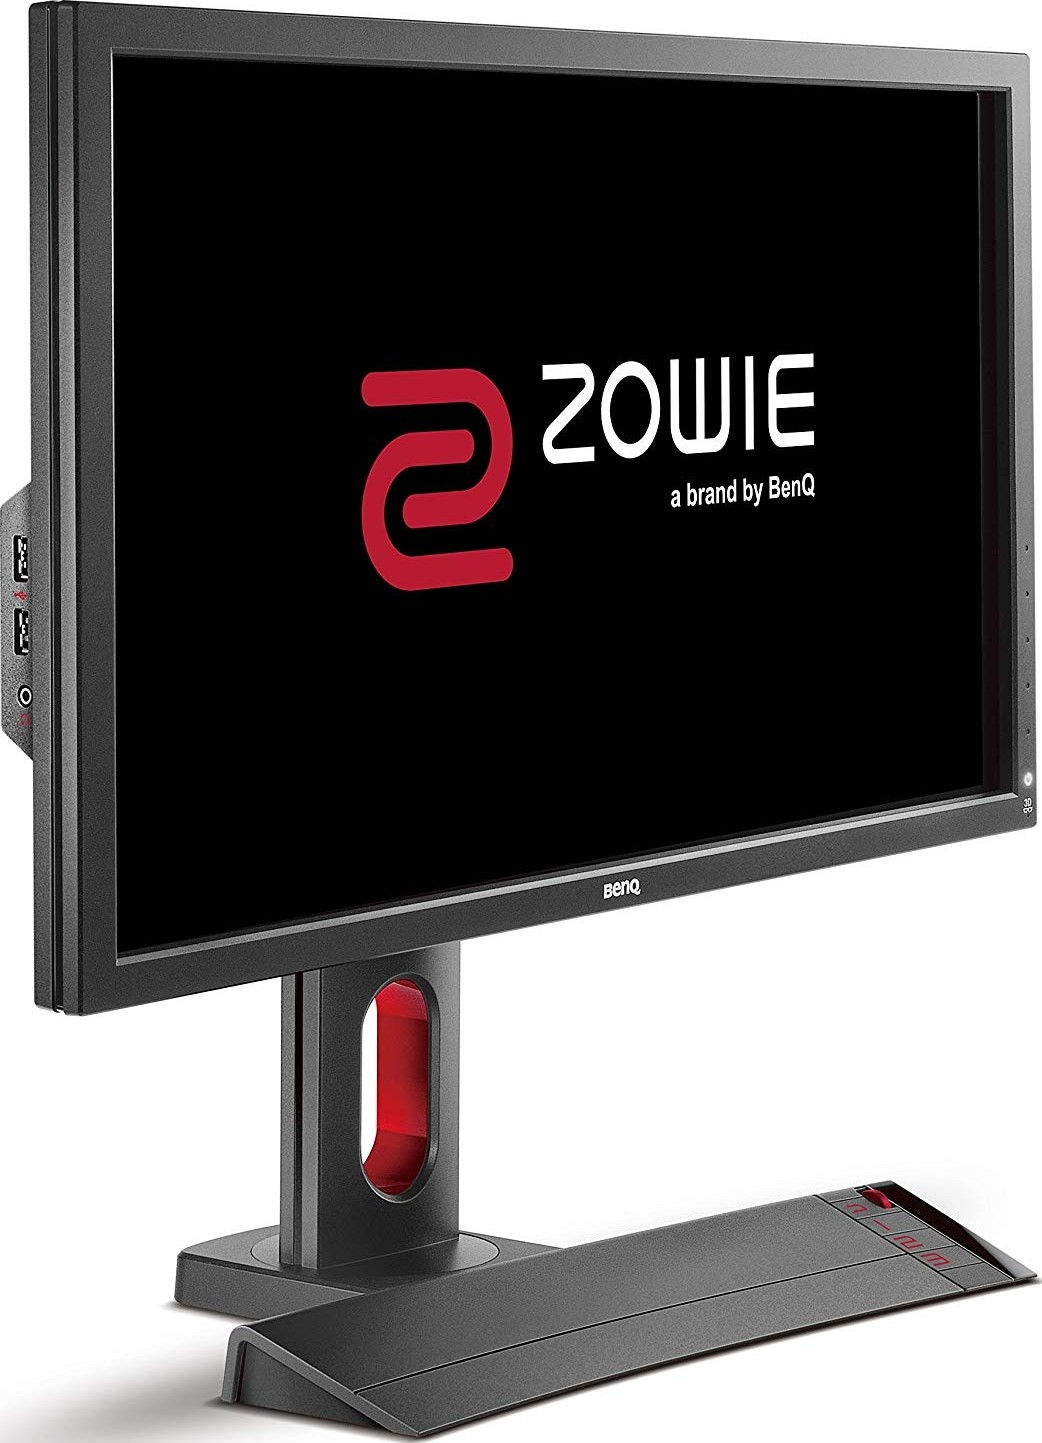 BenQ ZOWIE XL2720 27 Inch 144 Hz e Sports Gaming Monitor with 1 ms, Height  Adjustable Stand, S Switc